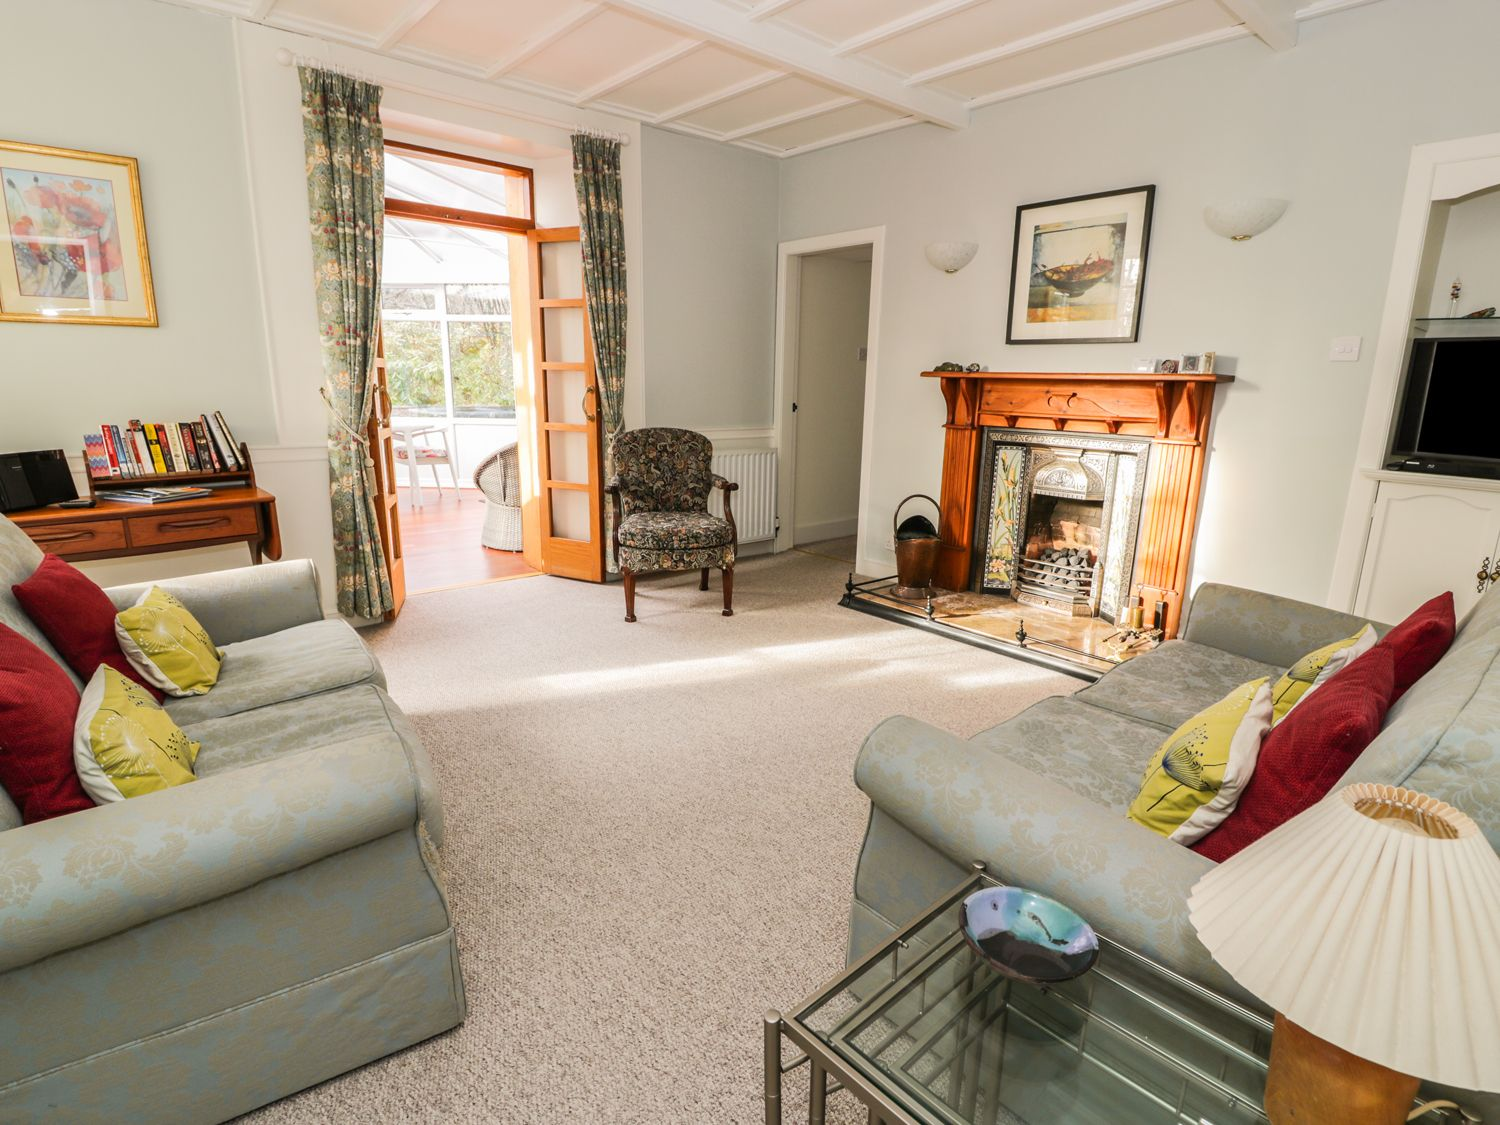 Blairlogie Park Coach House in Blairlogie near Stirling - sleeps 4 people